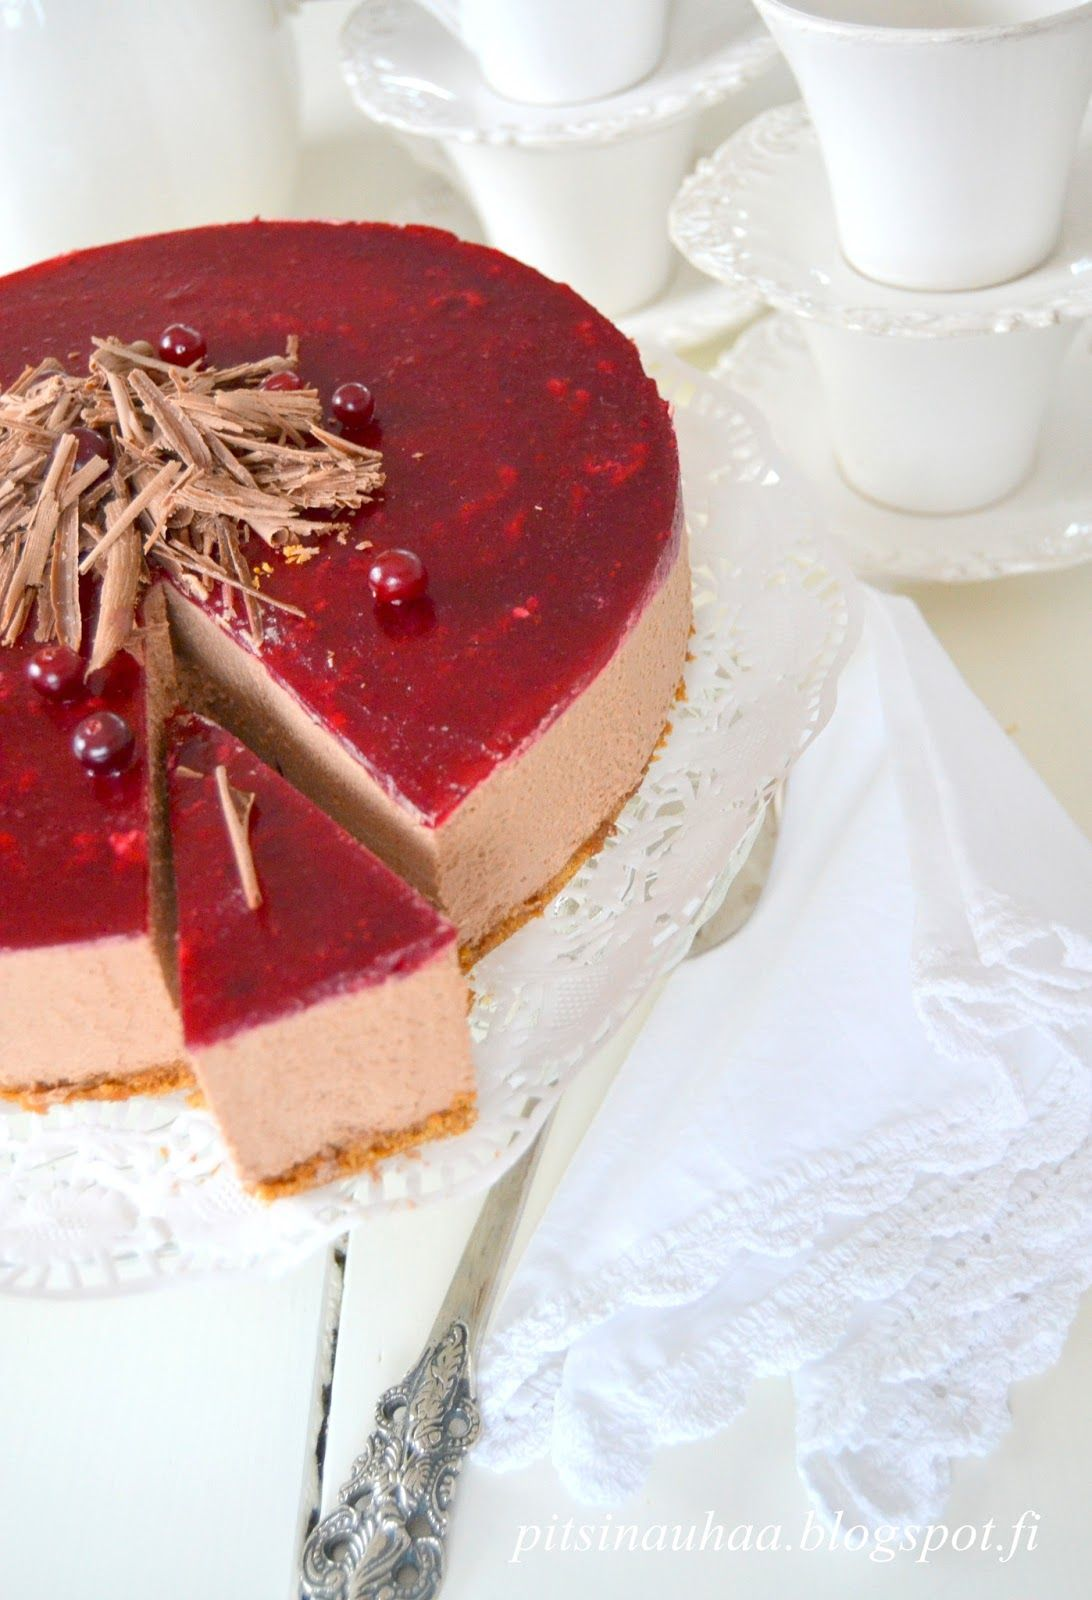 milk chocolate and cranberries -cake.